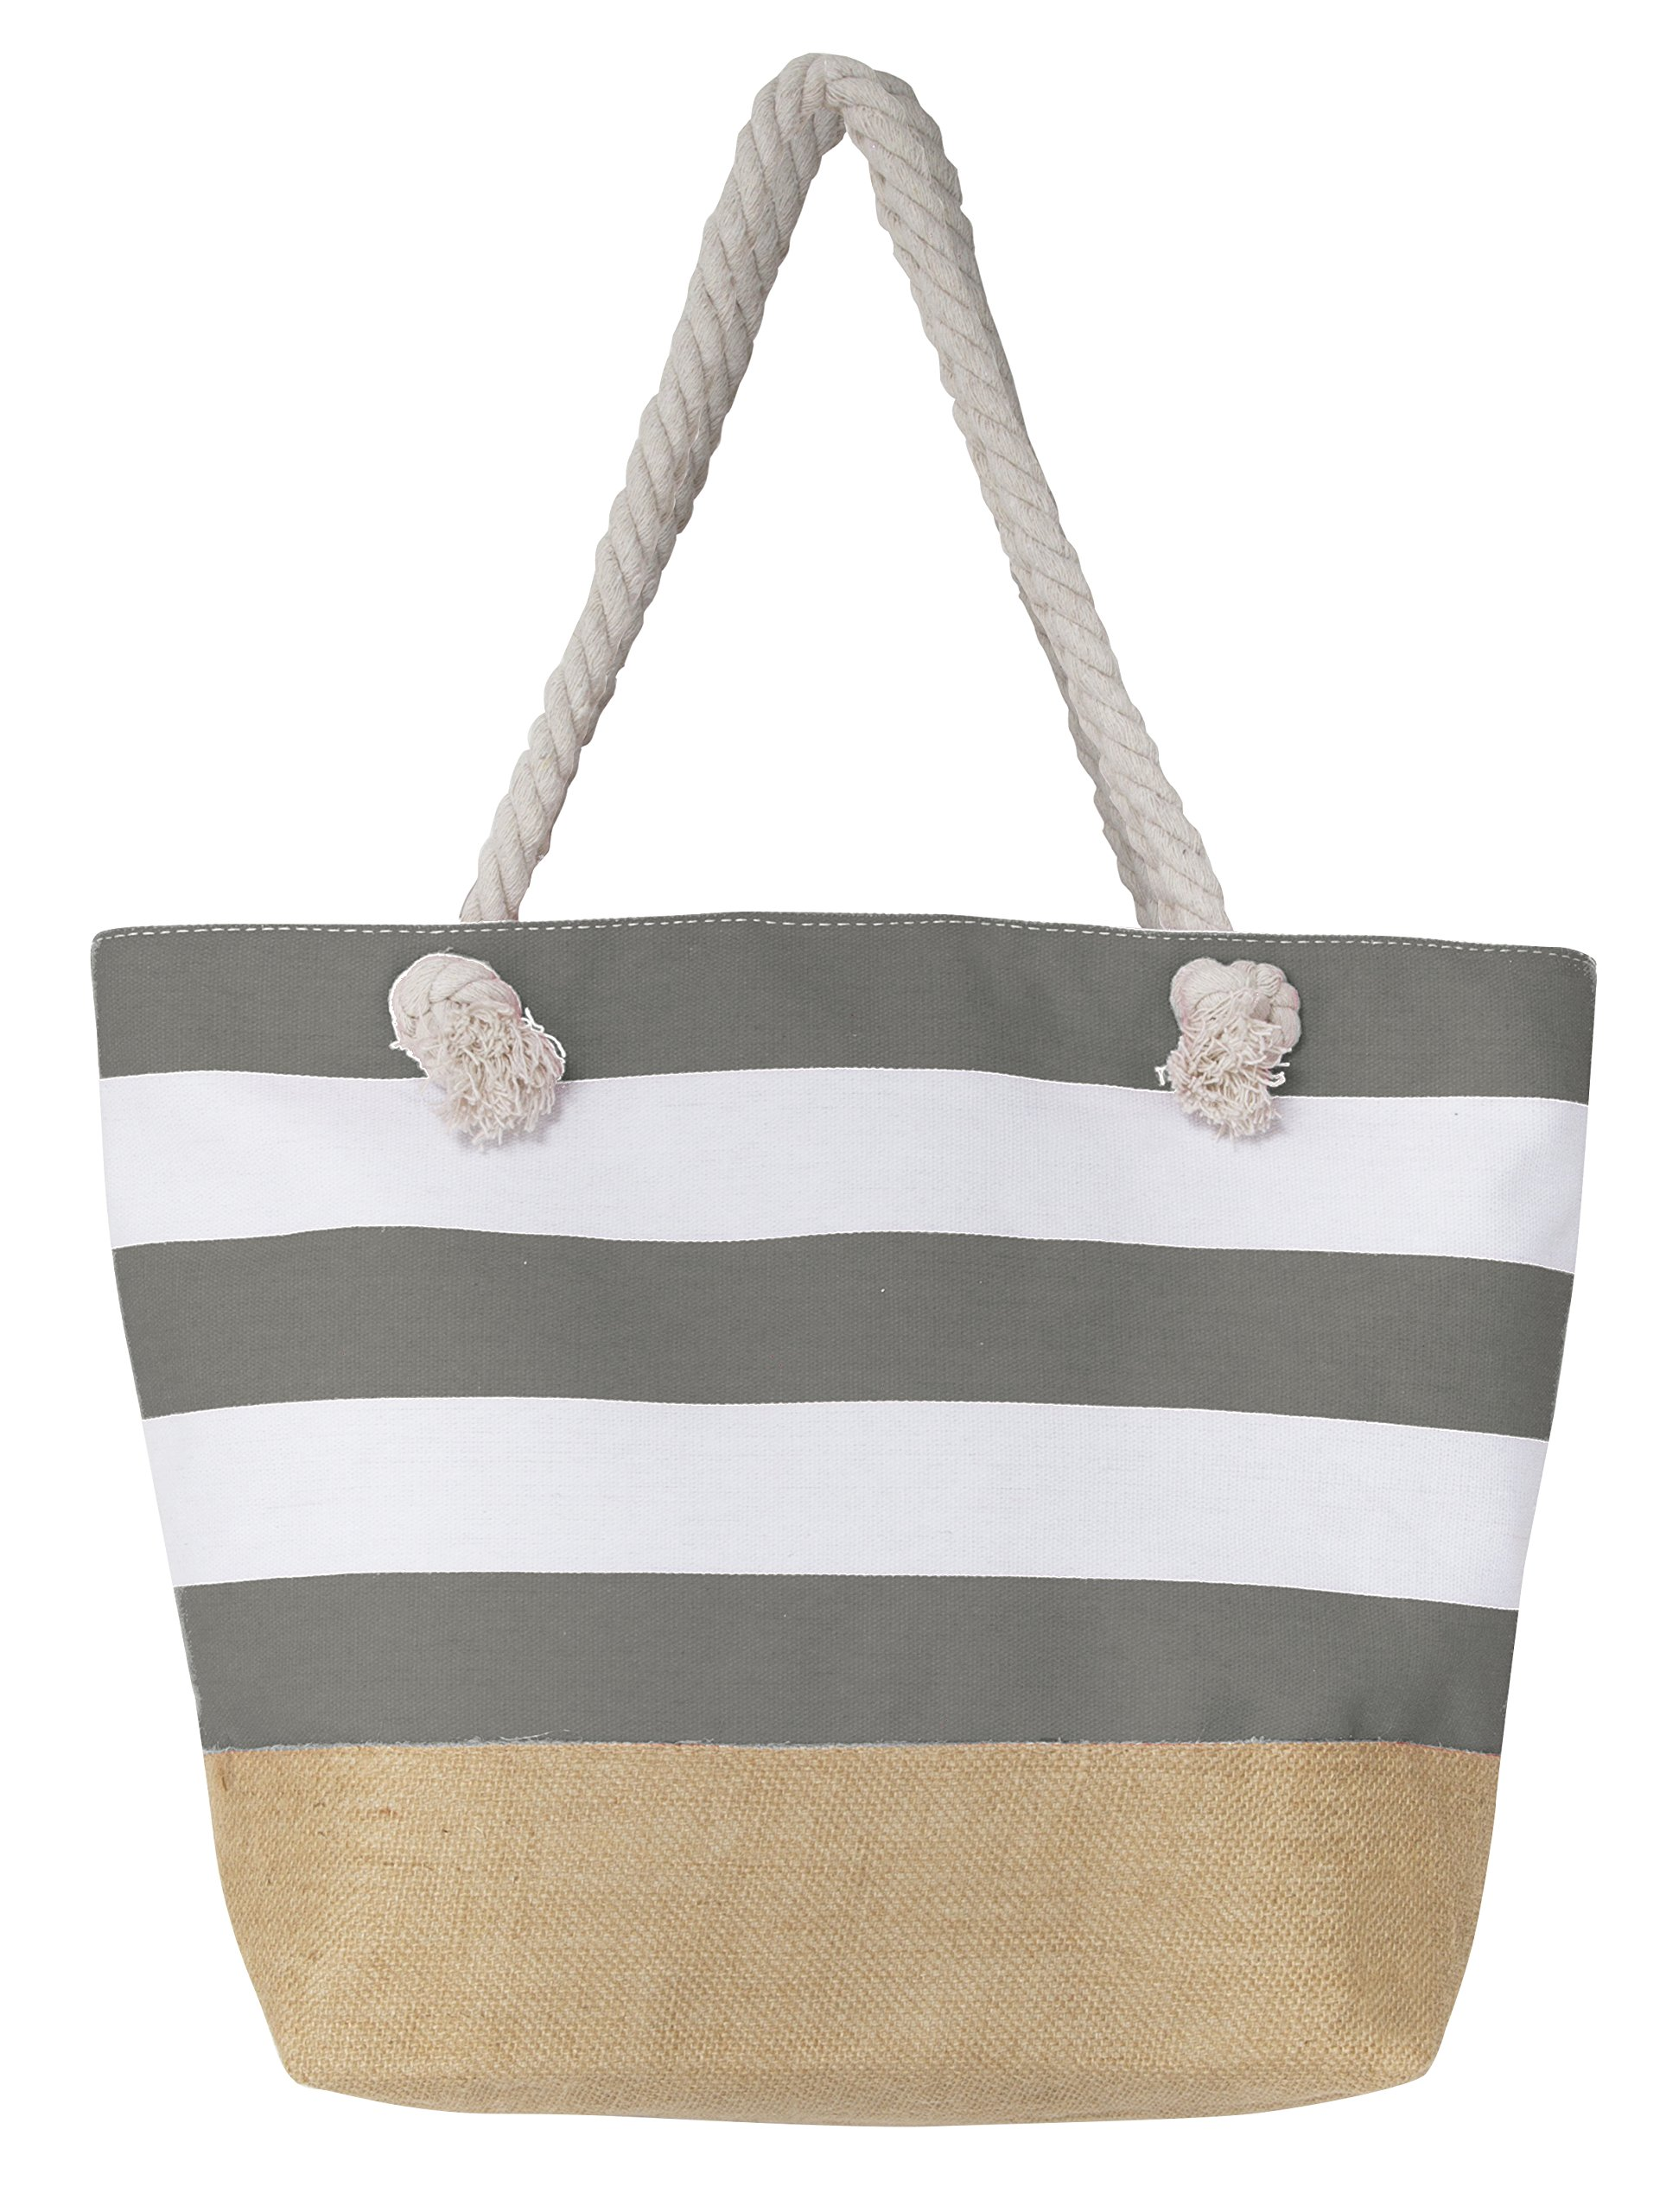 Leisureland Canvas Tote Beach Bag, Water Resistant Shoulder Tote Bag (L20 xH15 xW6, Stripe Gray)